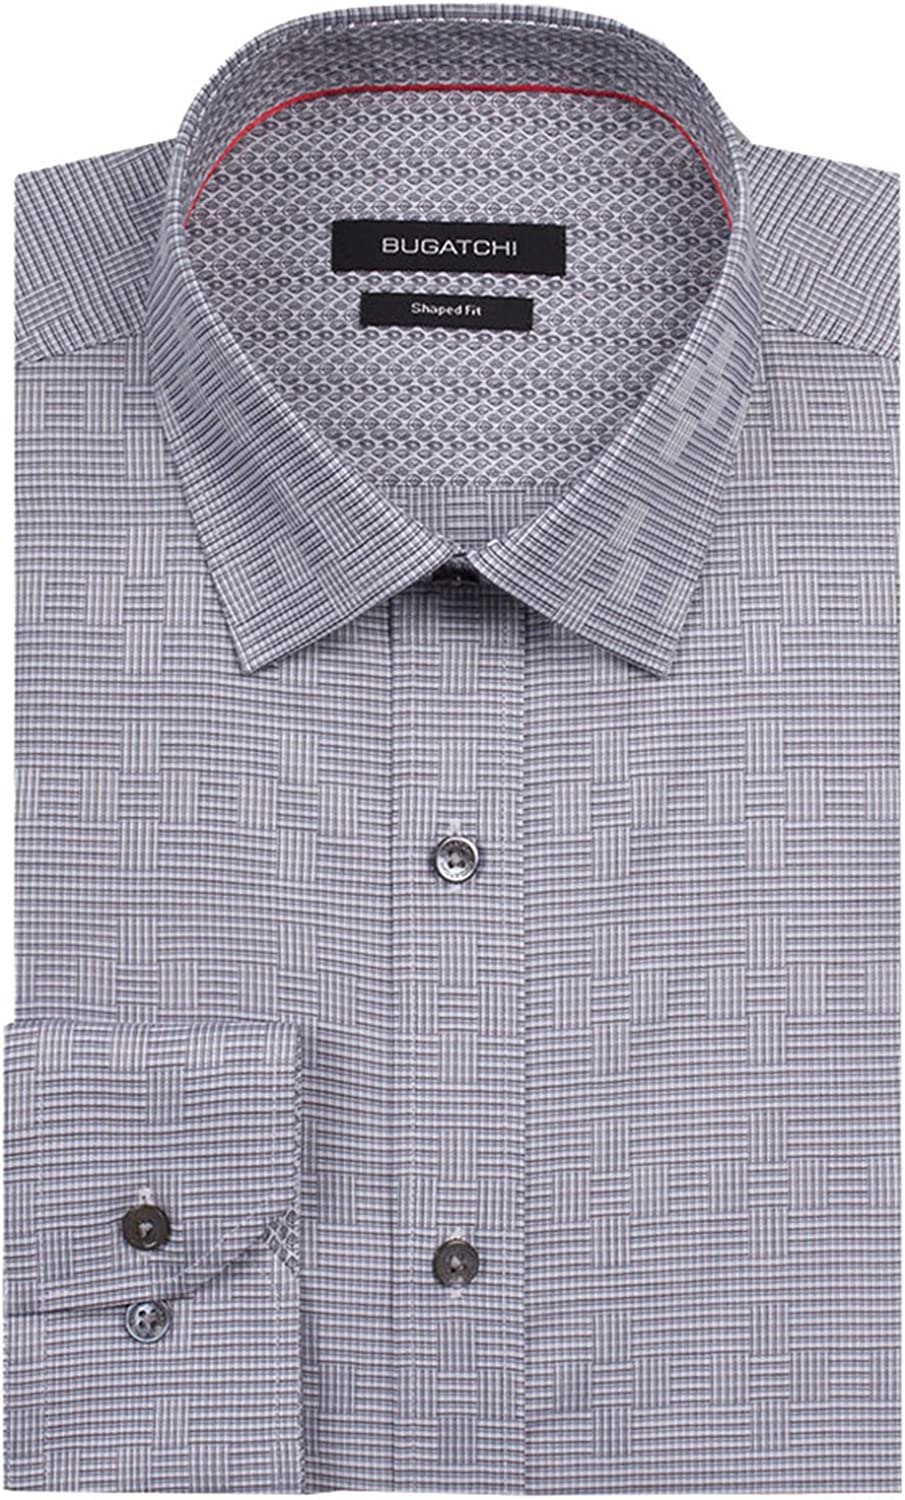 Bugatchi Storm Cloud Classic Fit Button Up Shirt